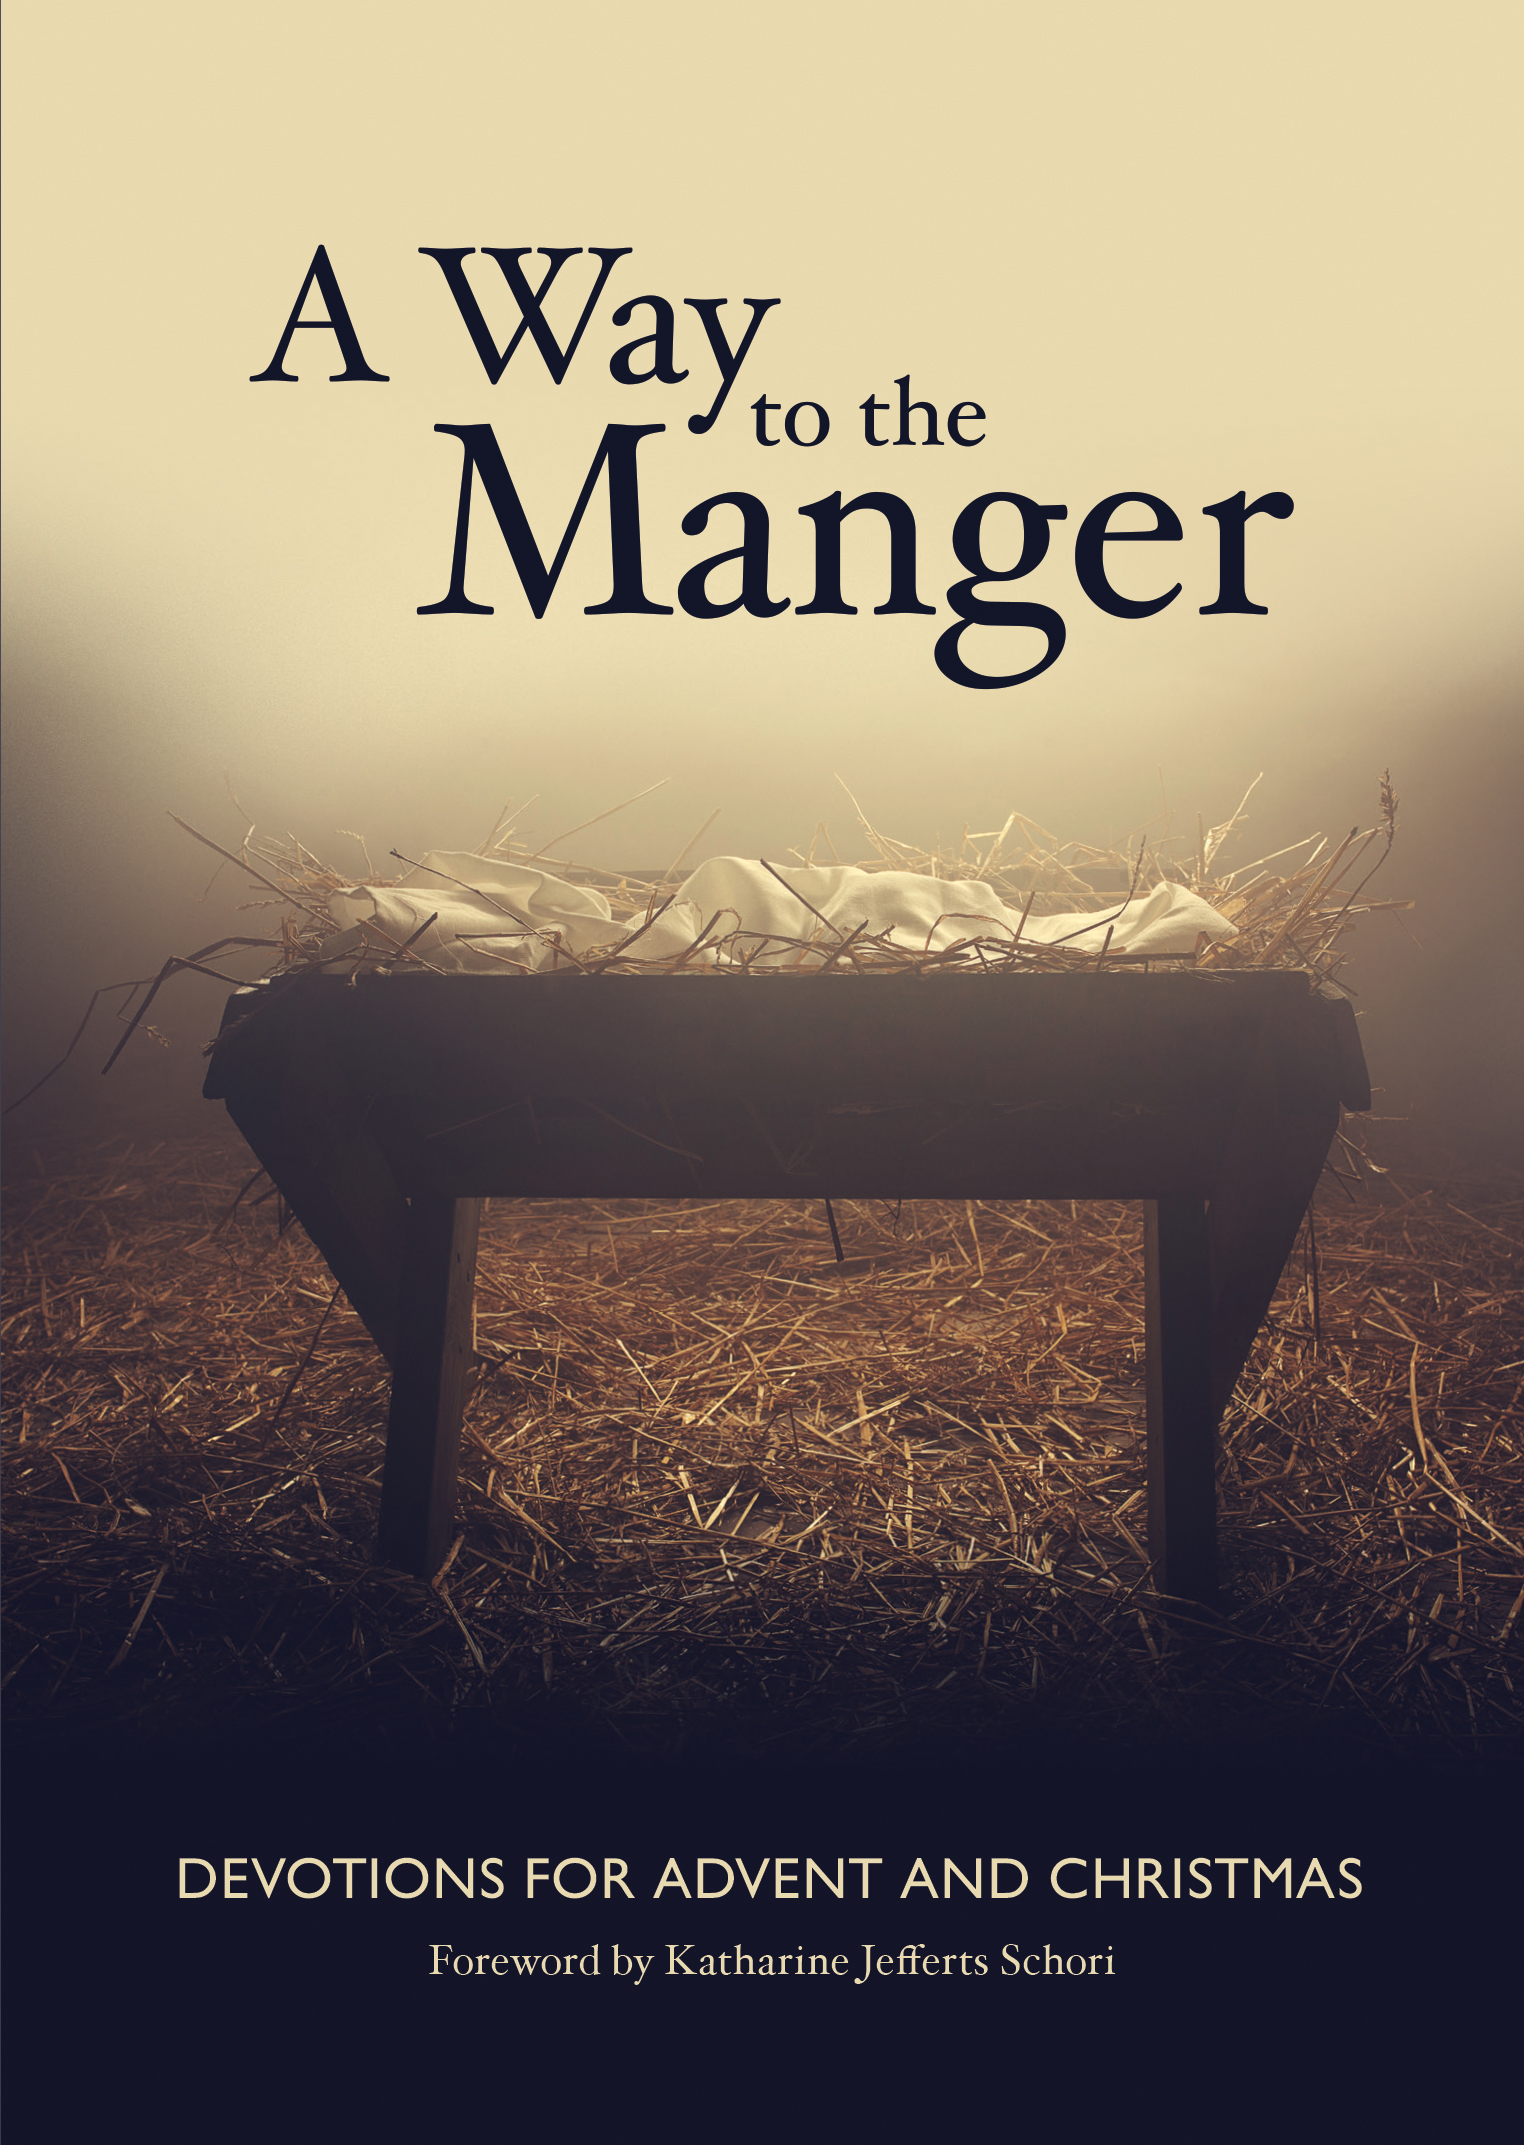 A Way to the Manger